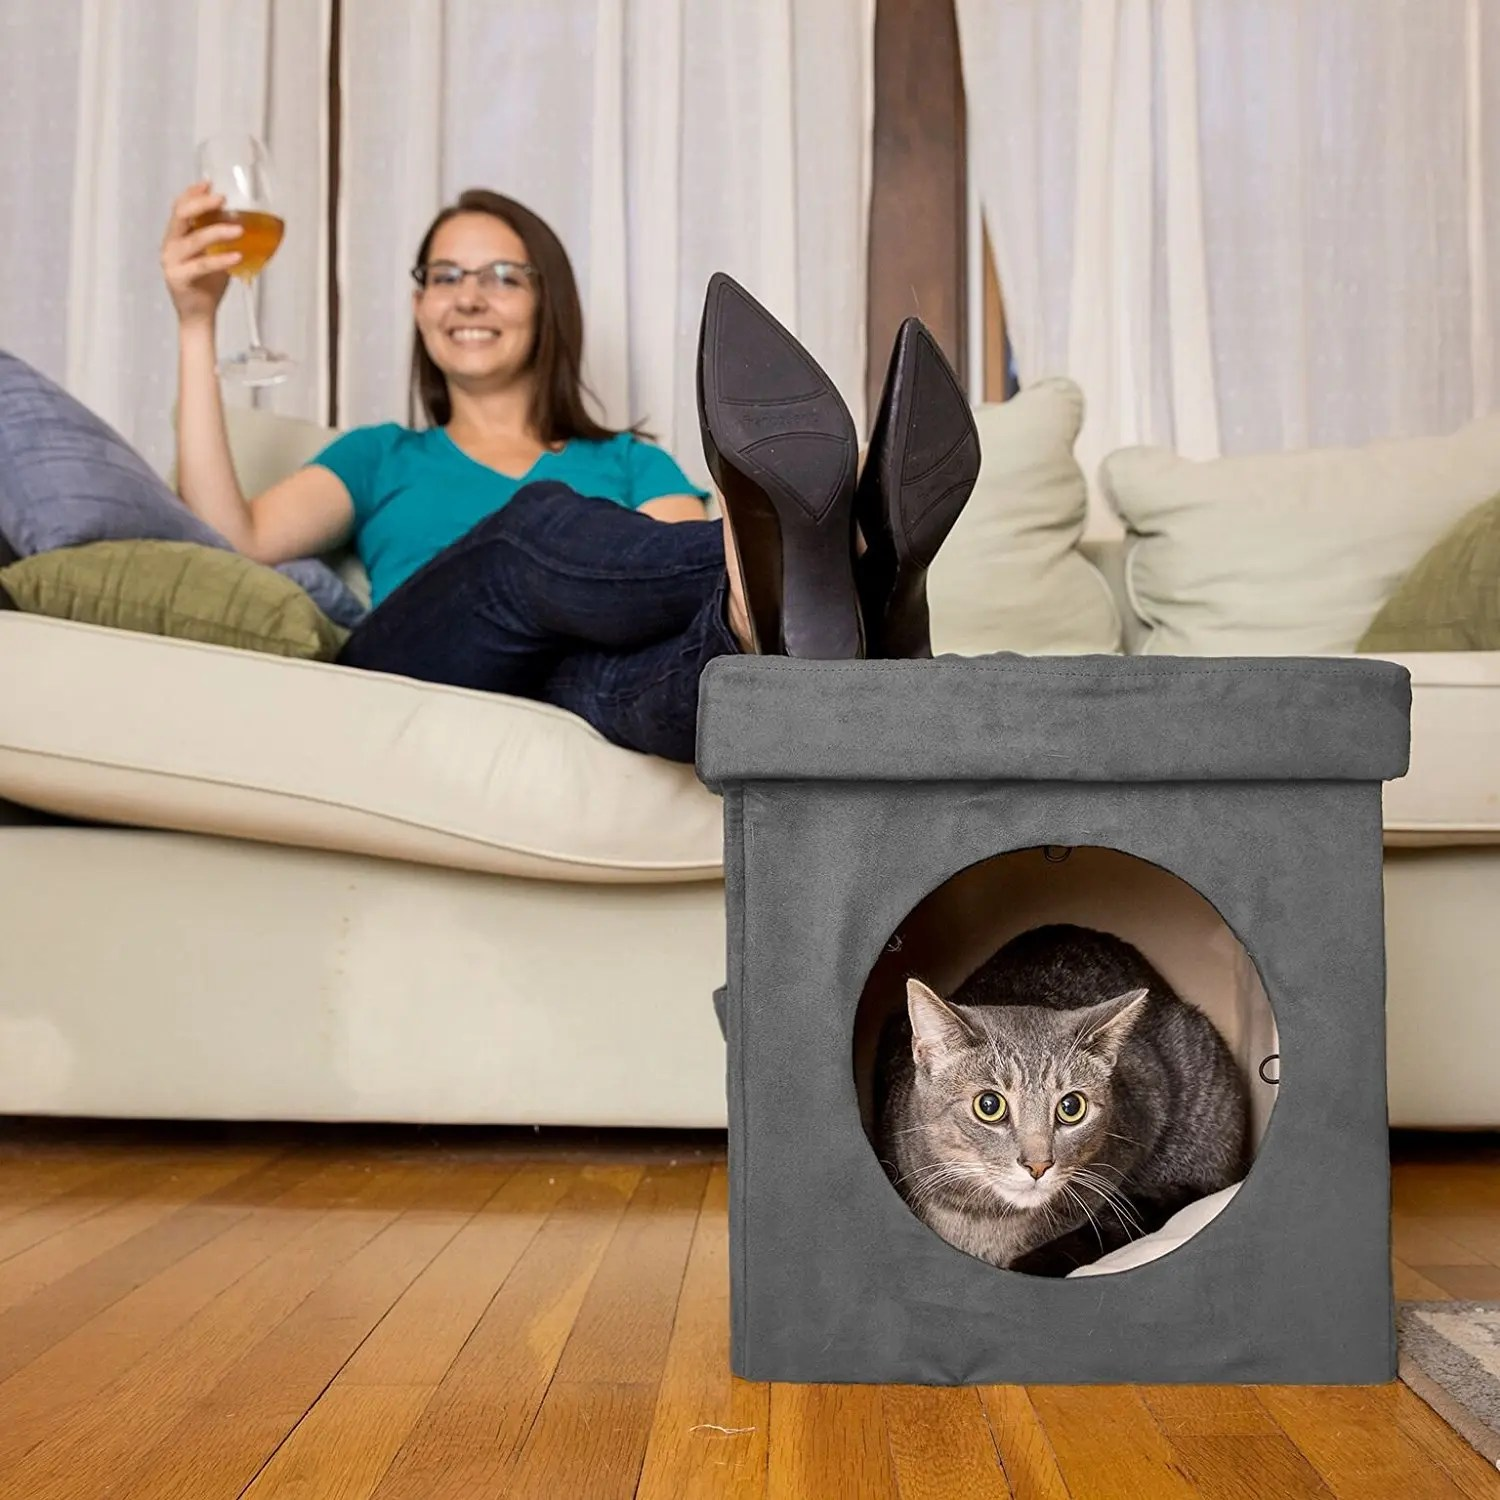 Comfortable Den Furniture The 6 Best Cat Beds For Your Feline Friend How To